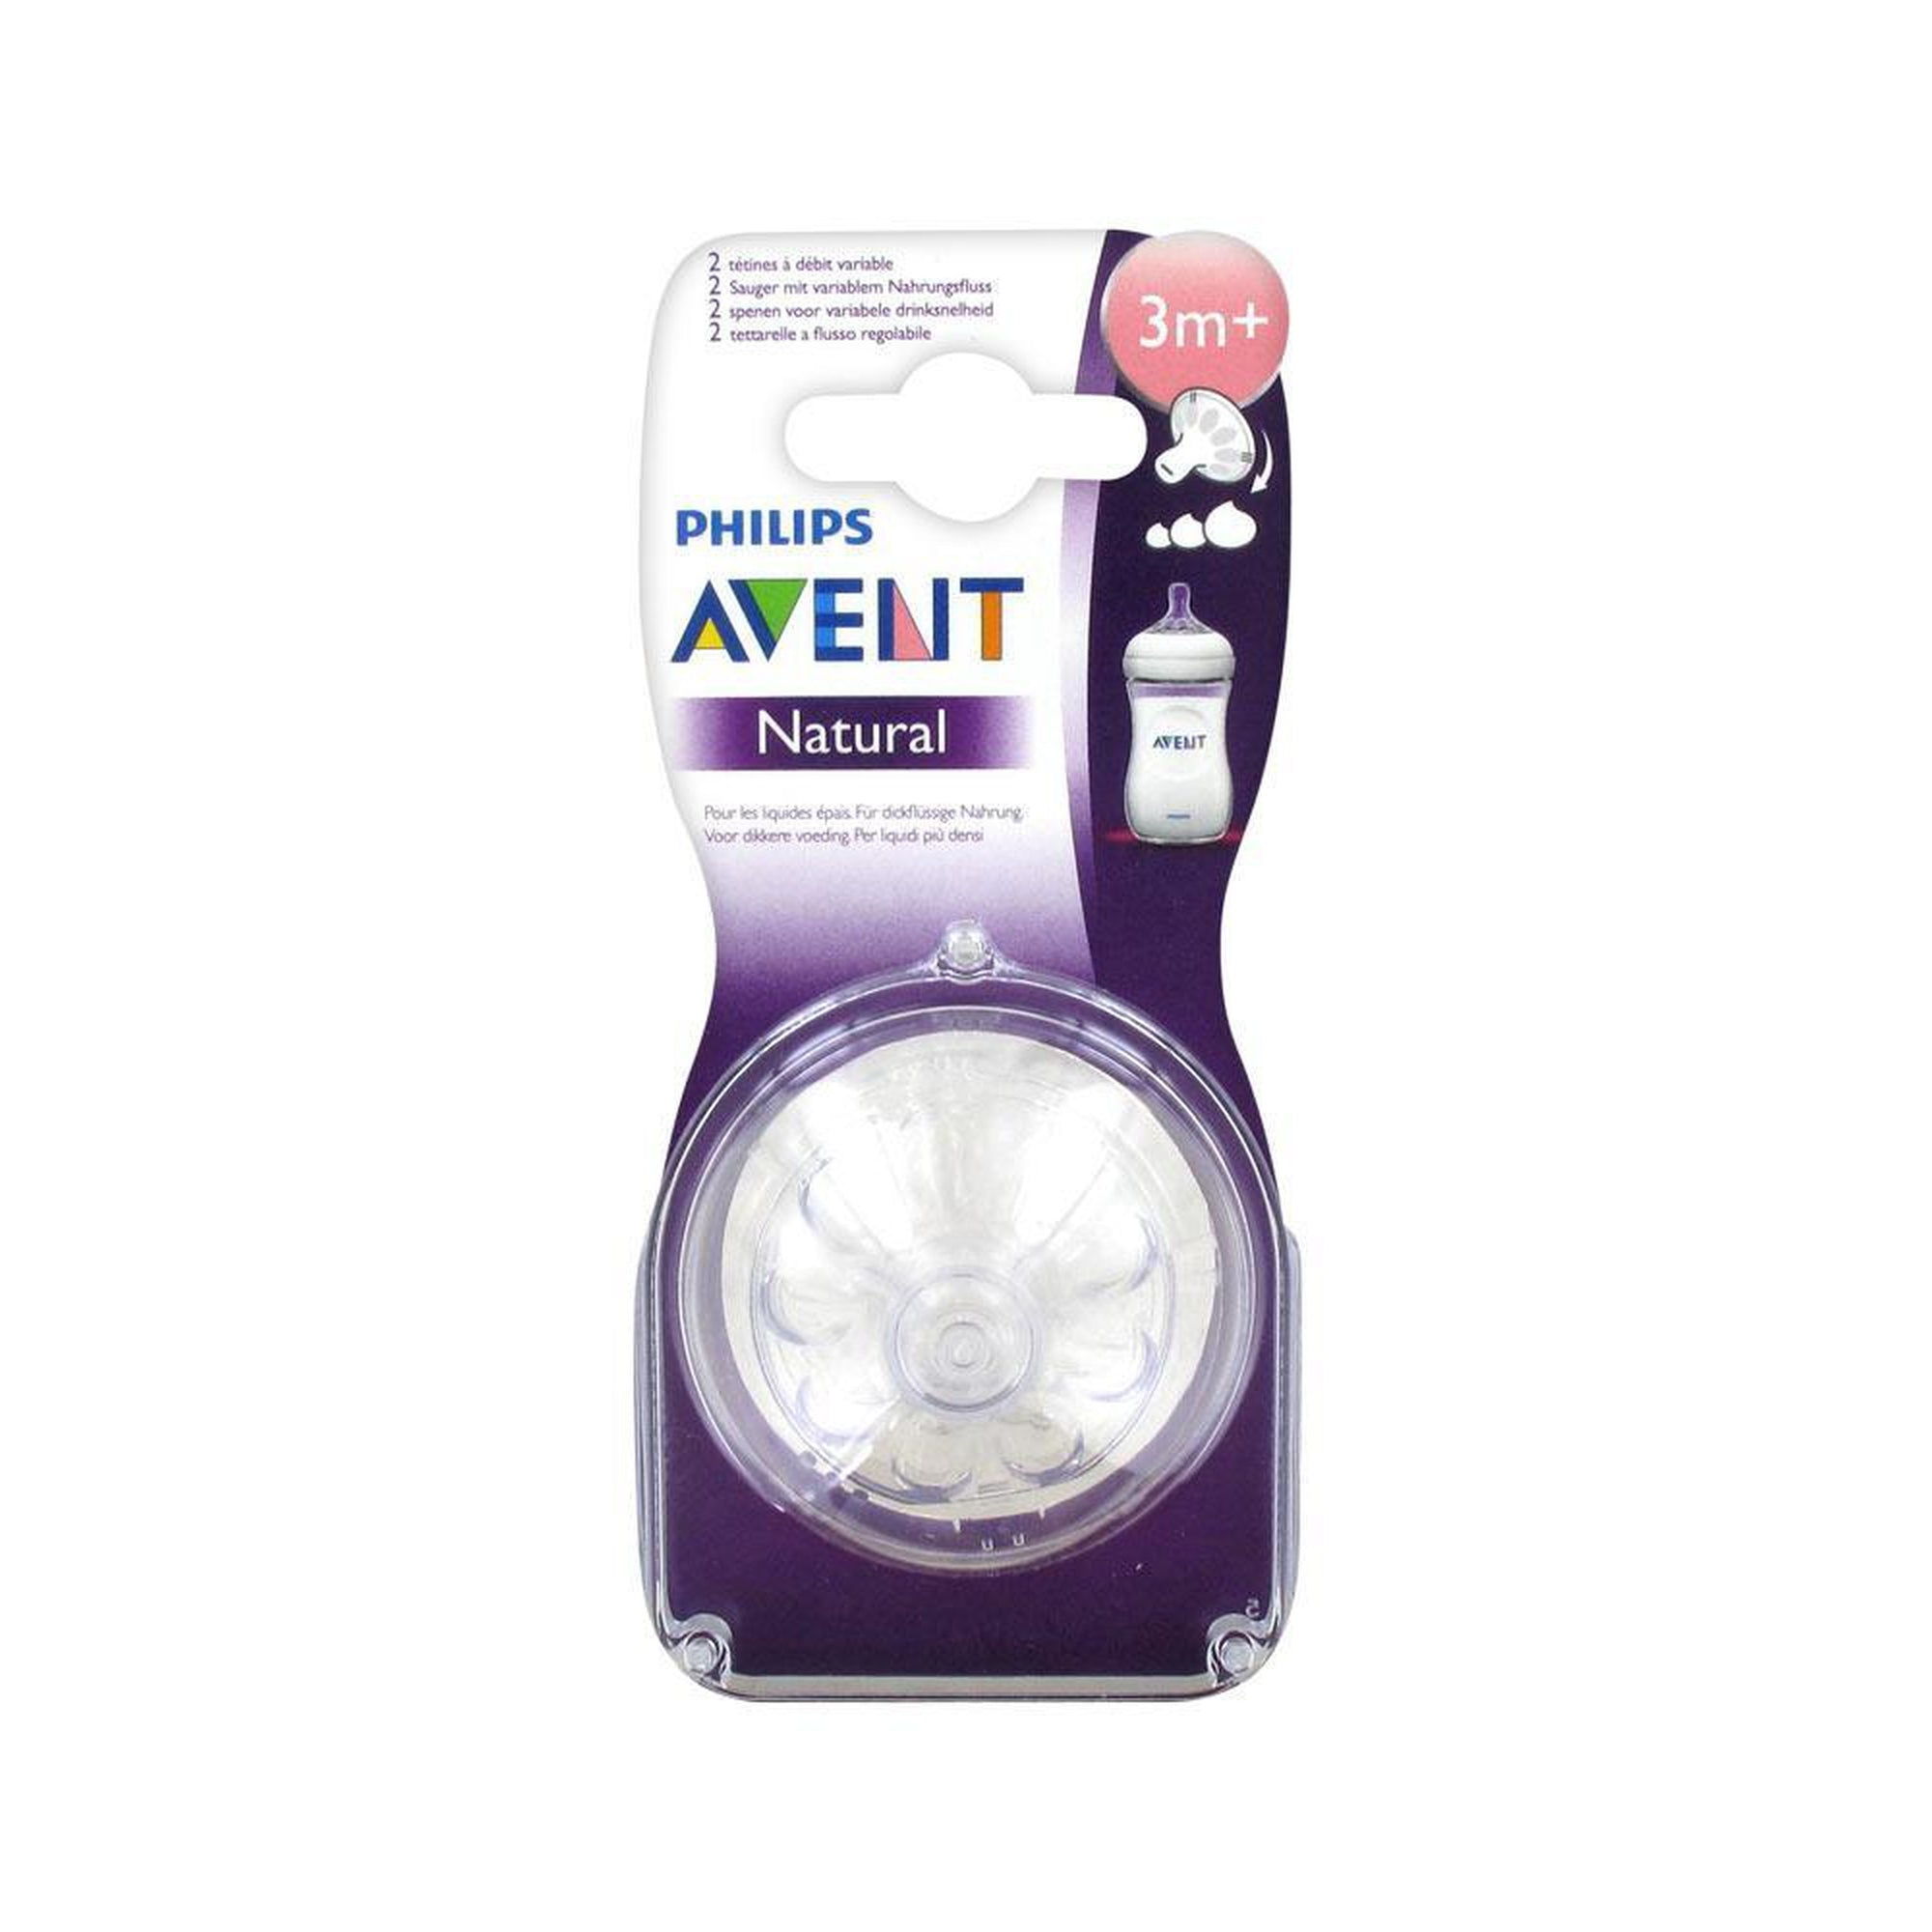 Avent 2 Variable Flow Teats 3M+ Natural-Teat-Mother and Baby Shop Kenya's #1 Online Baby Shop